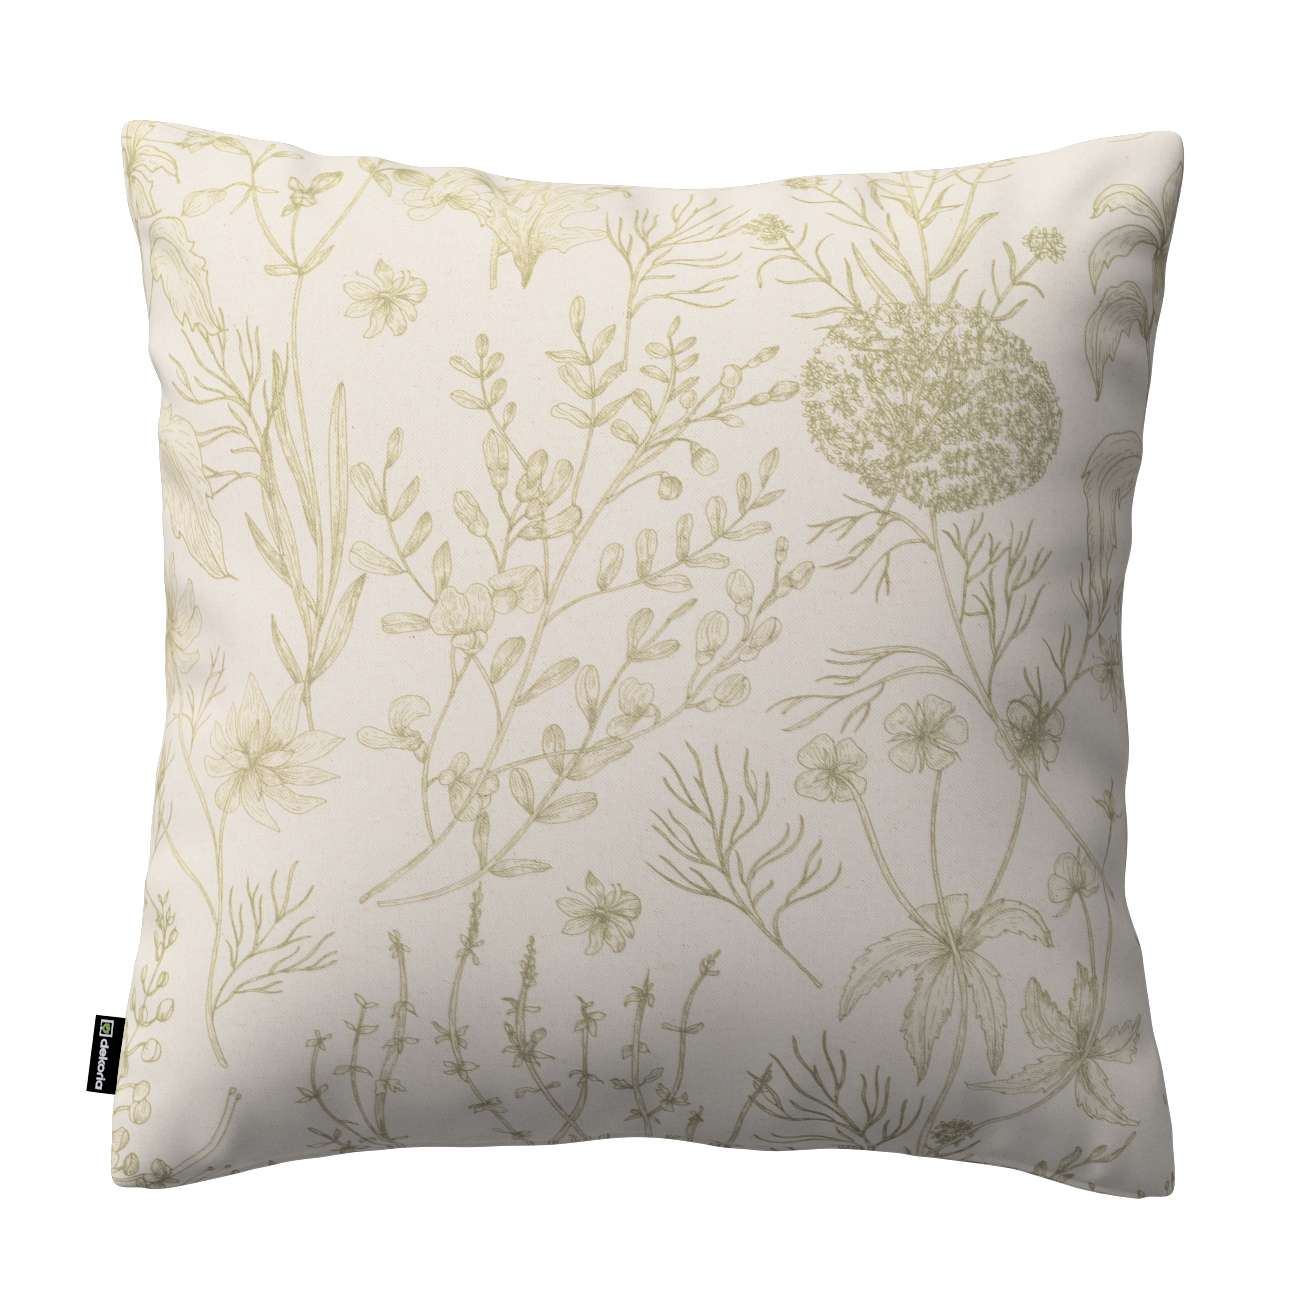 Kinga cushion cover in collection Nordic, fabric: 142-92